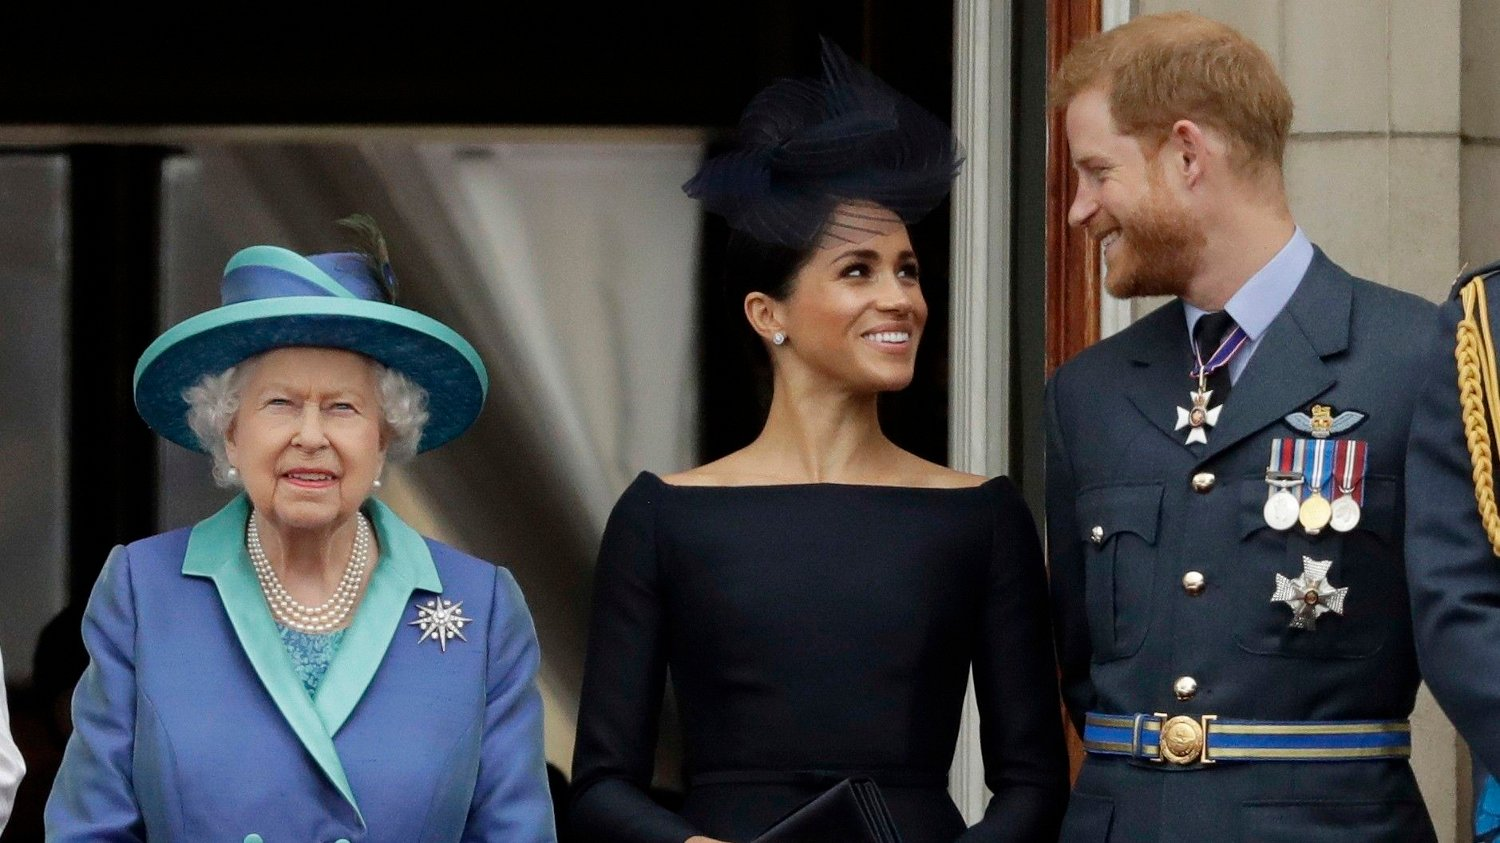 Britain Royal Rift FILE - In this Tuesday, July 10, 2018 file photo Britain's Queen Elizabeth II, and Meghan the Duchess of Sussex and Prince Harry watch a flypast of Royal Air Force aircraft pass over Buckingham Palace in London. As part of a surprise announcement distancing themselves from the British royal family, Prince Harry and his wife Meghan declared they will work to become financially independent _ a move that has not been clearly spelled out and could be fraught with obstacles.